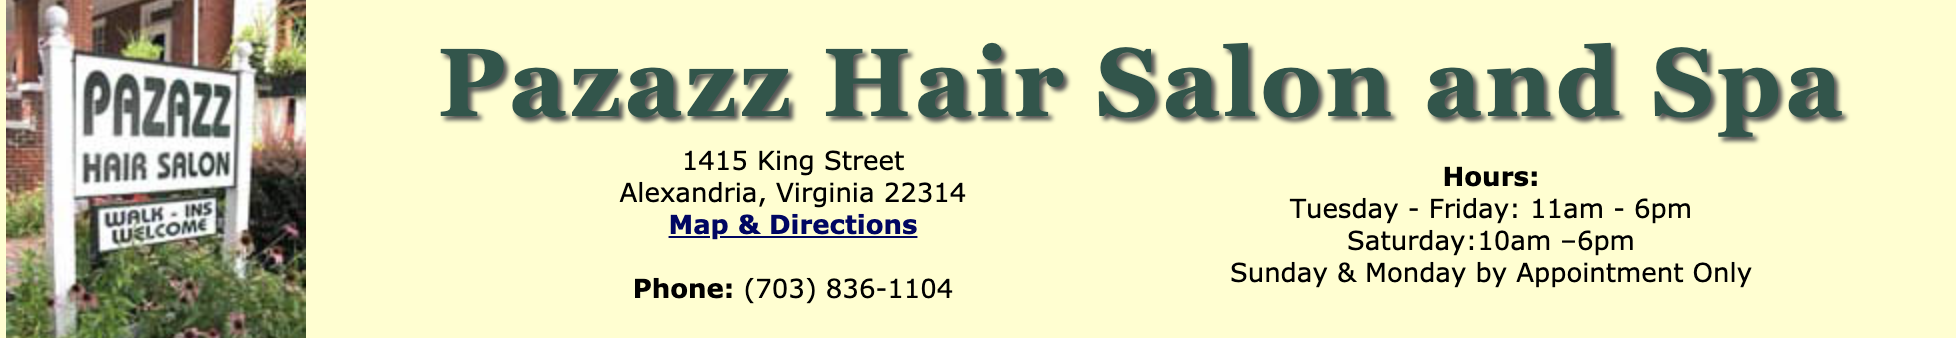 Pazazz Hair Salon and Spa | Old Town Alexandria, Virginia